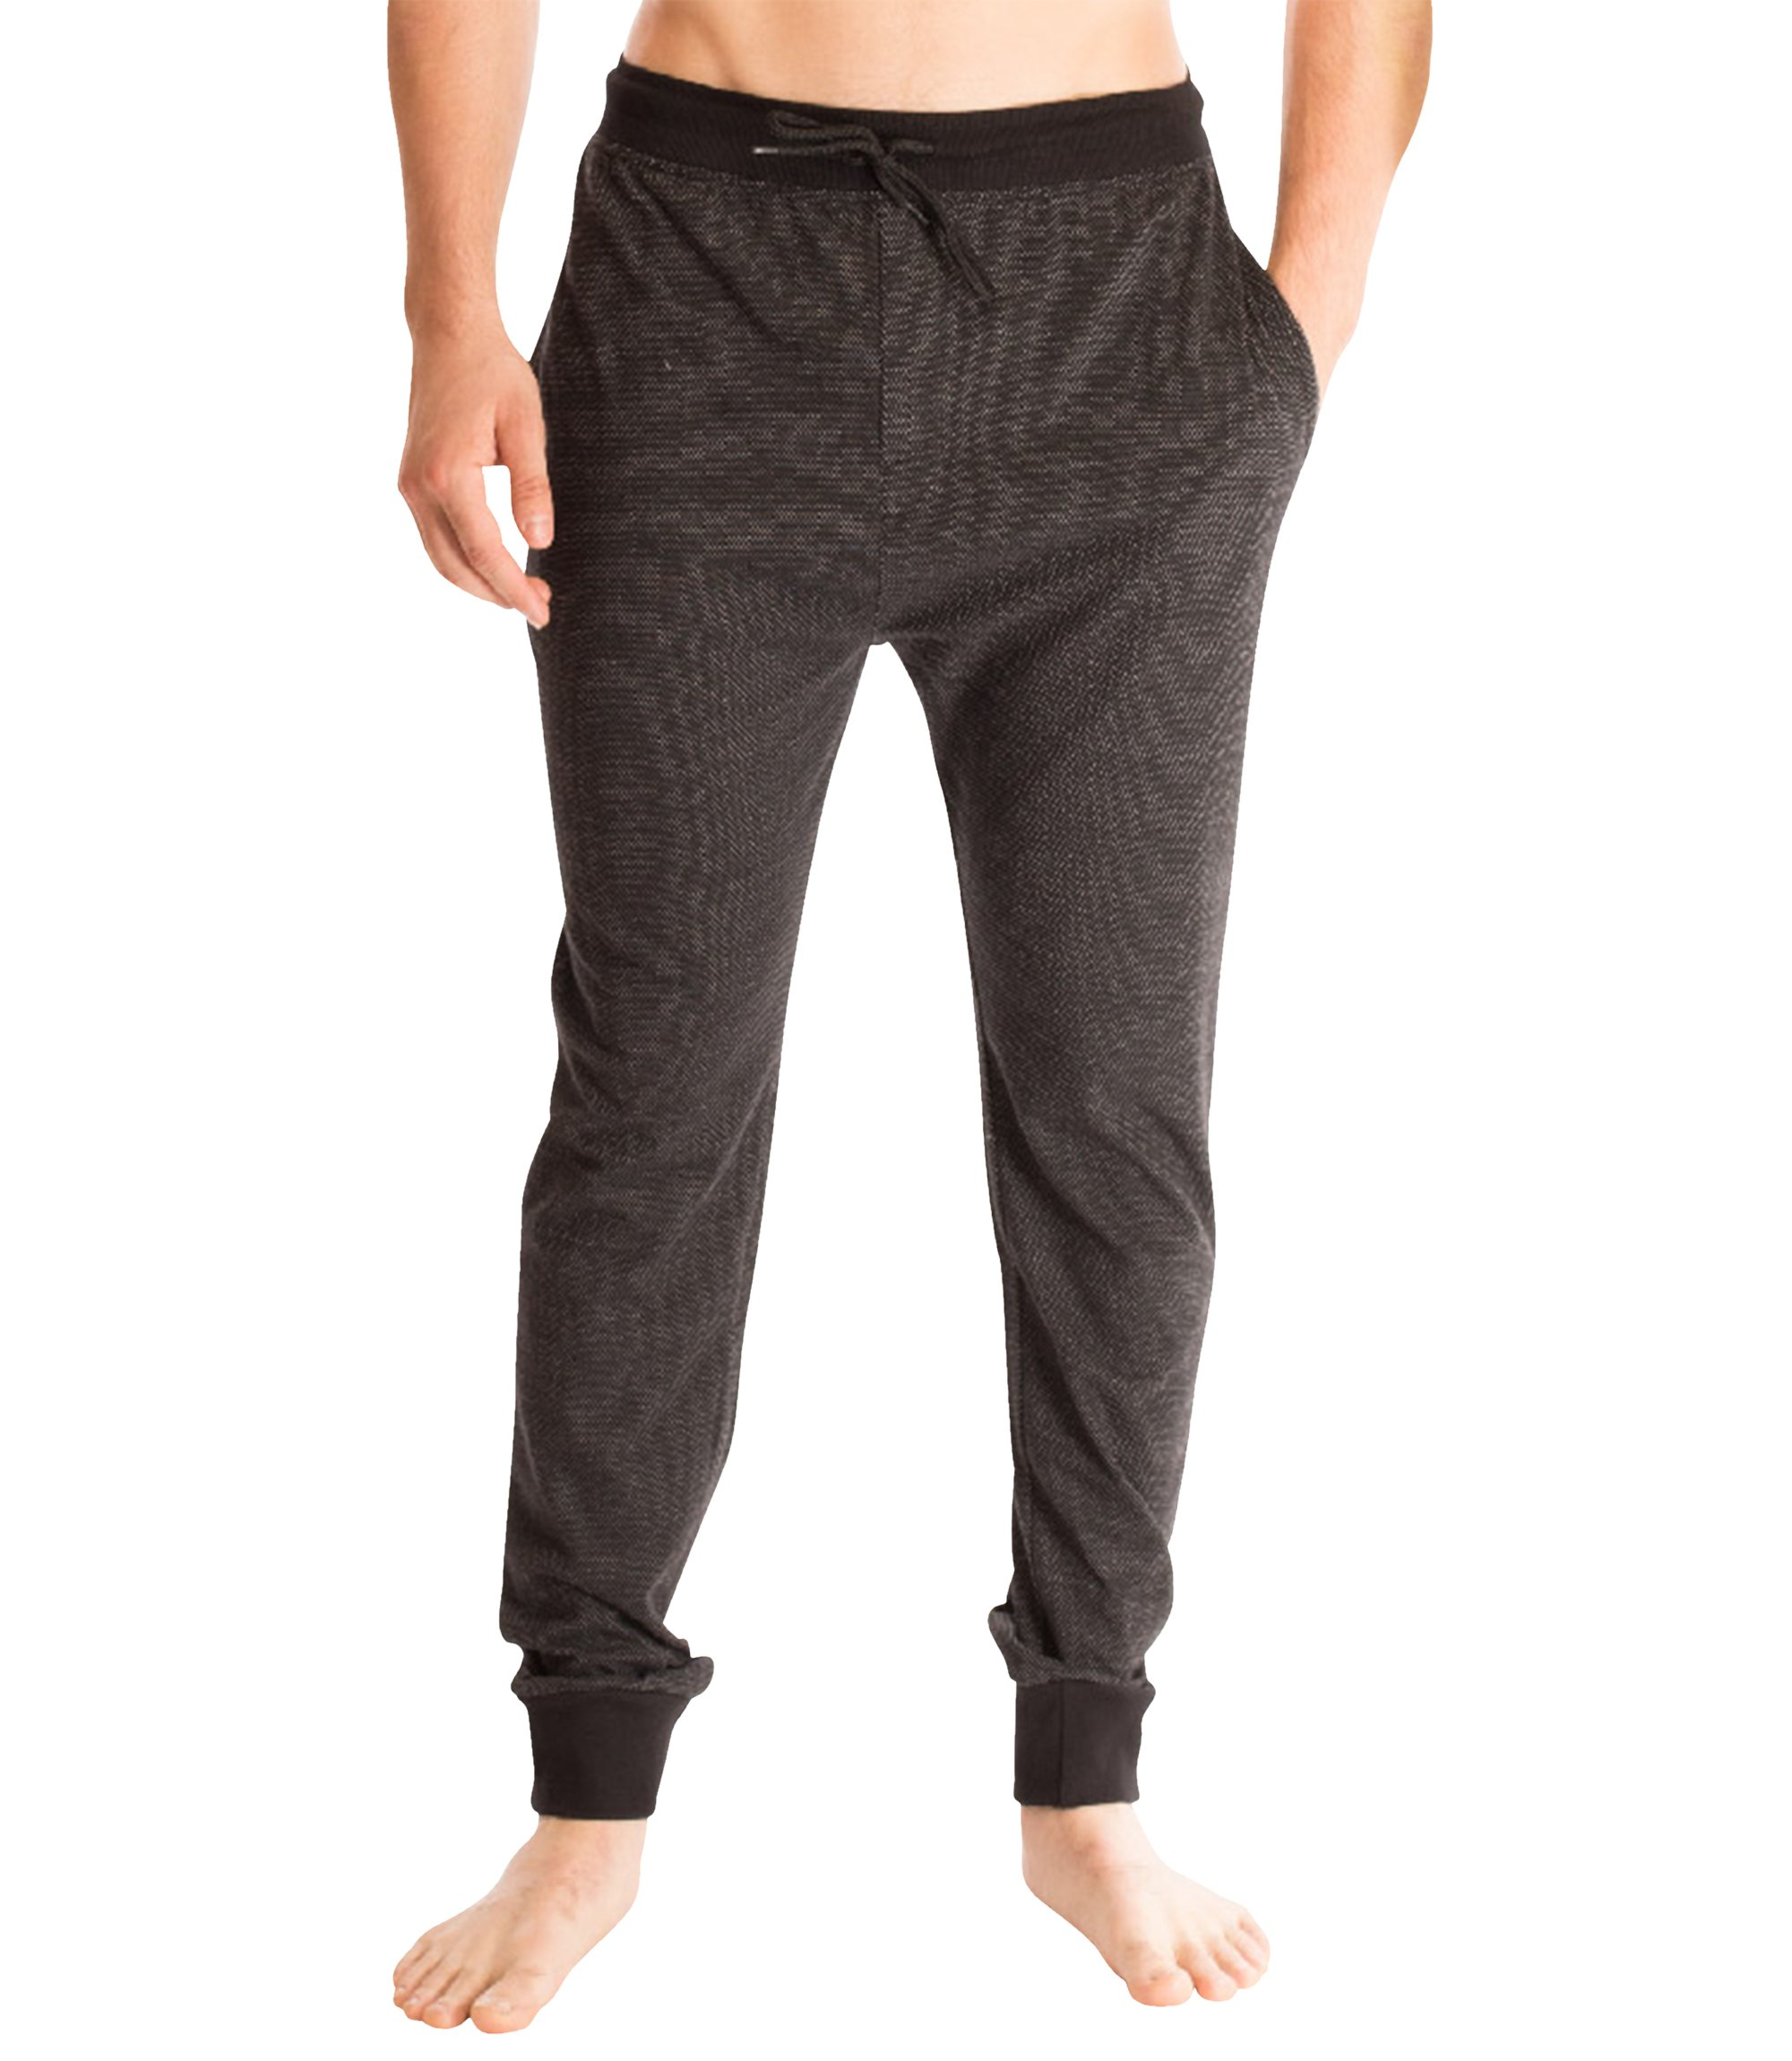 Bottoms Out Men's Comfortable Ankle Cuffed Fitted Flexible Pique Jogger Sweatpants for Men